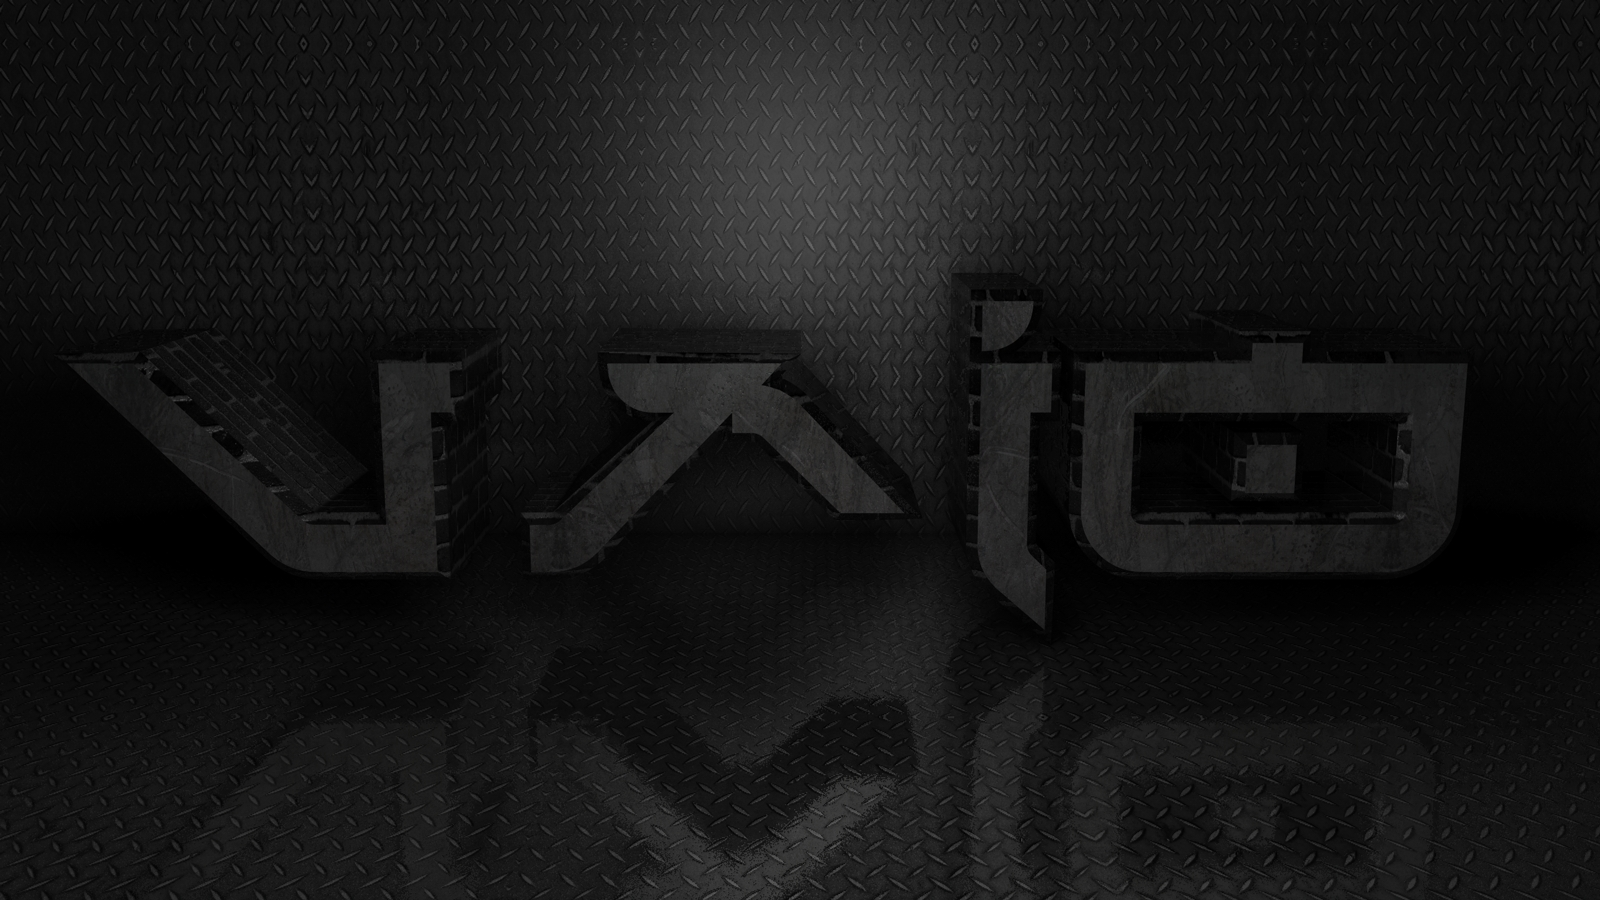 vaio black wallpaper hd